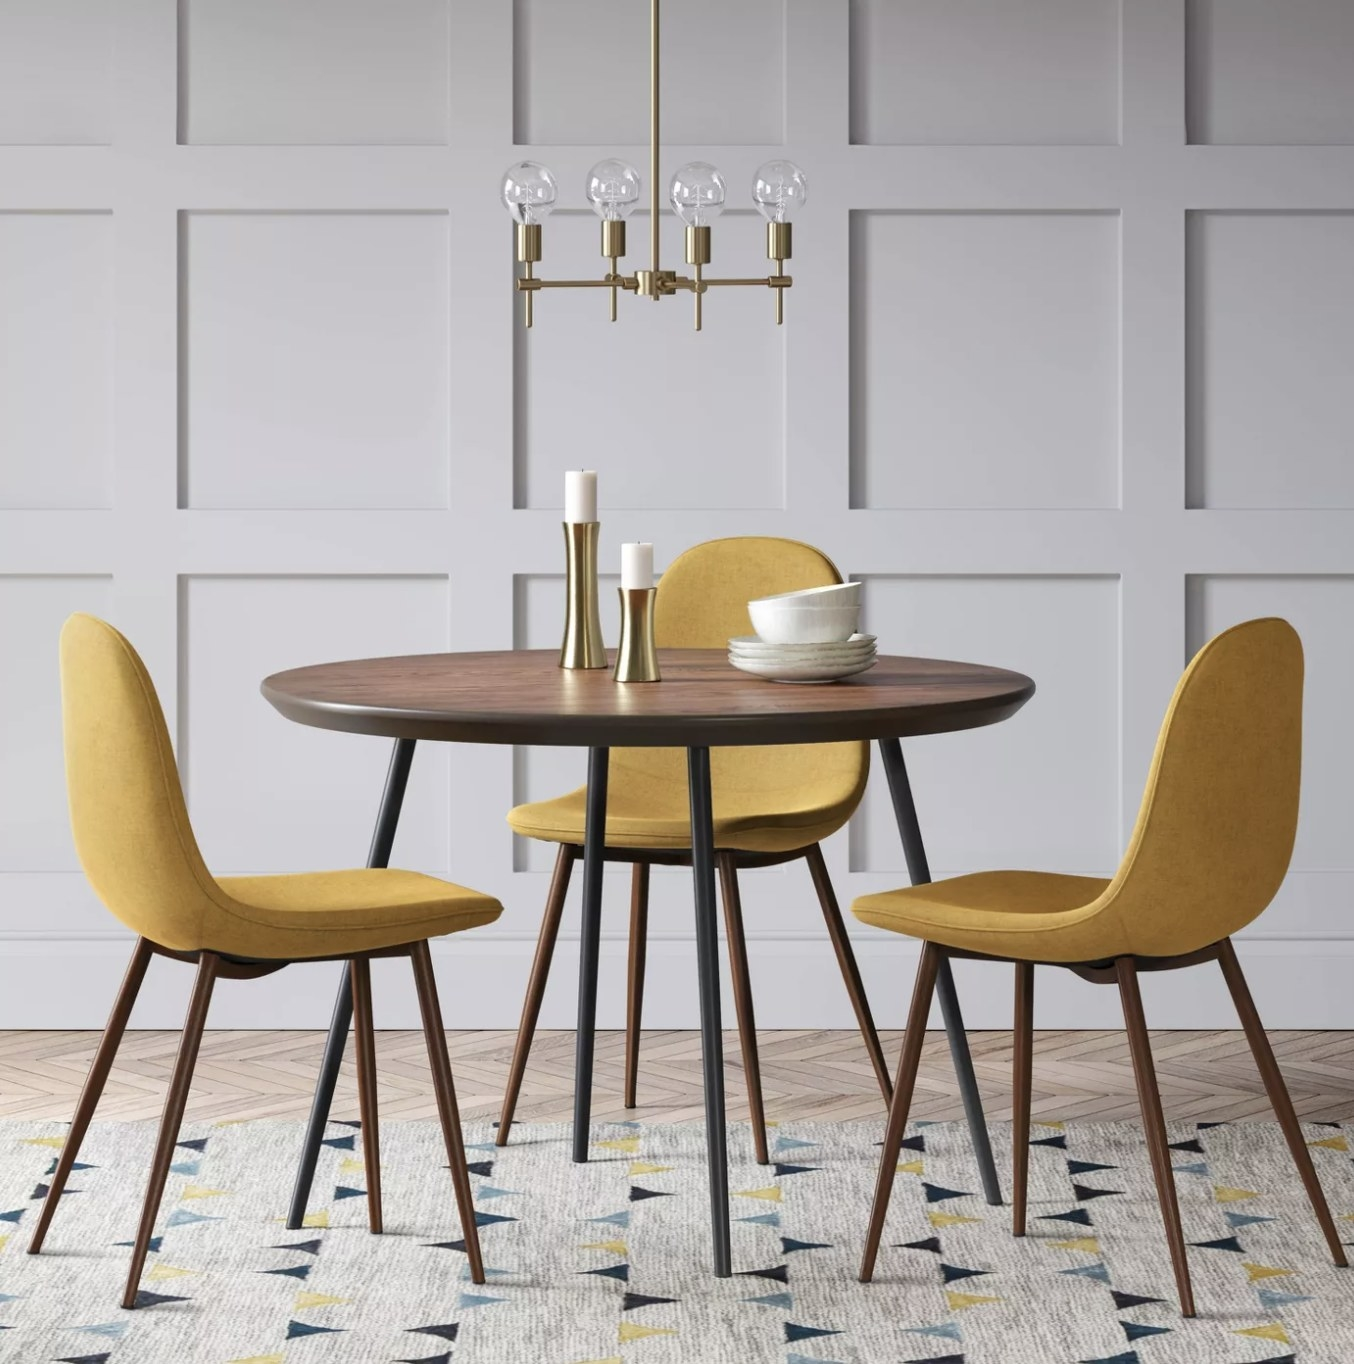 Thre mustard-colored chairs next to a table